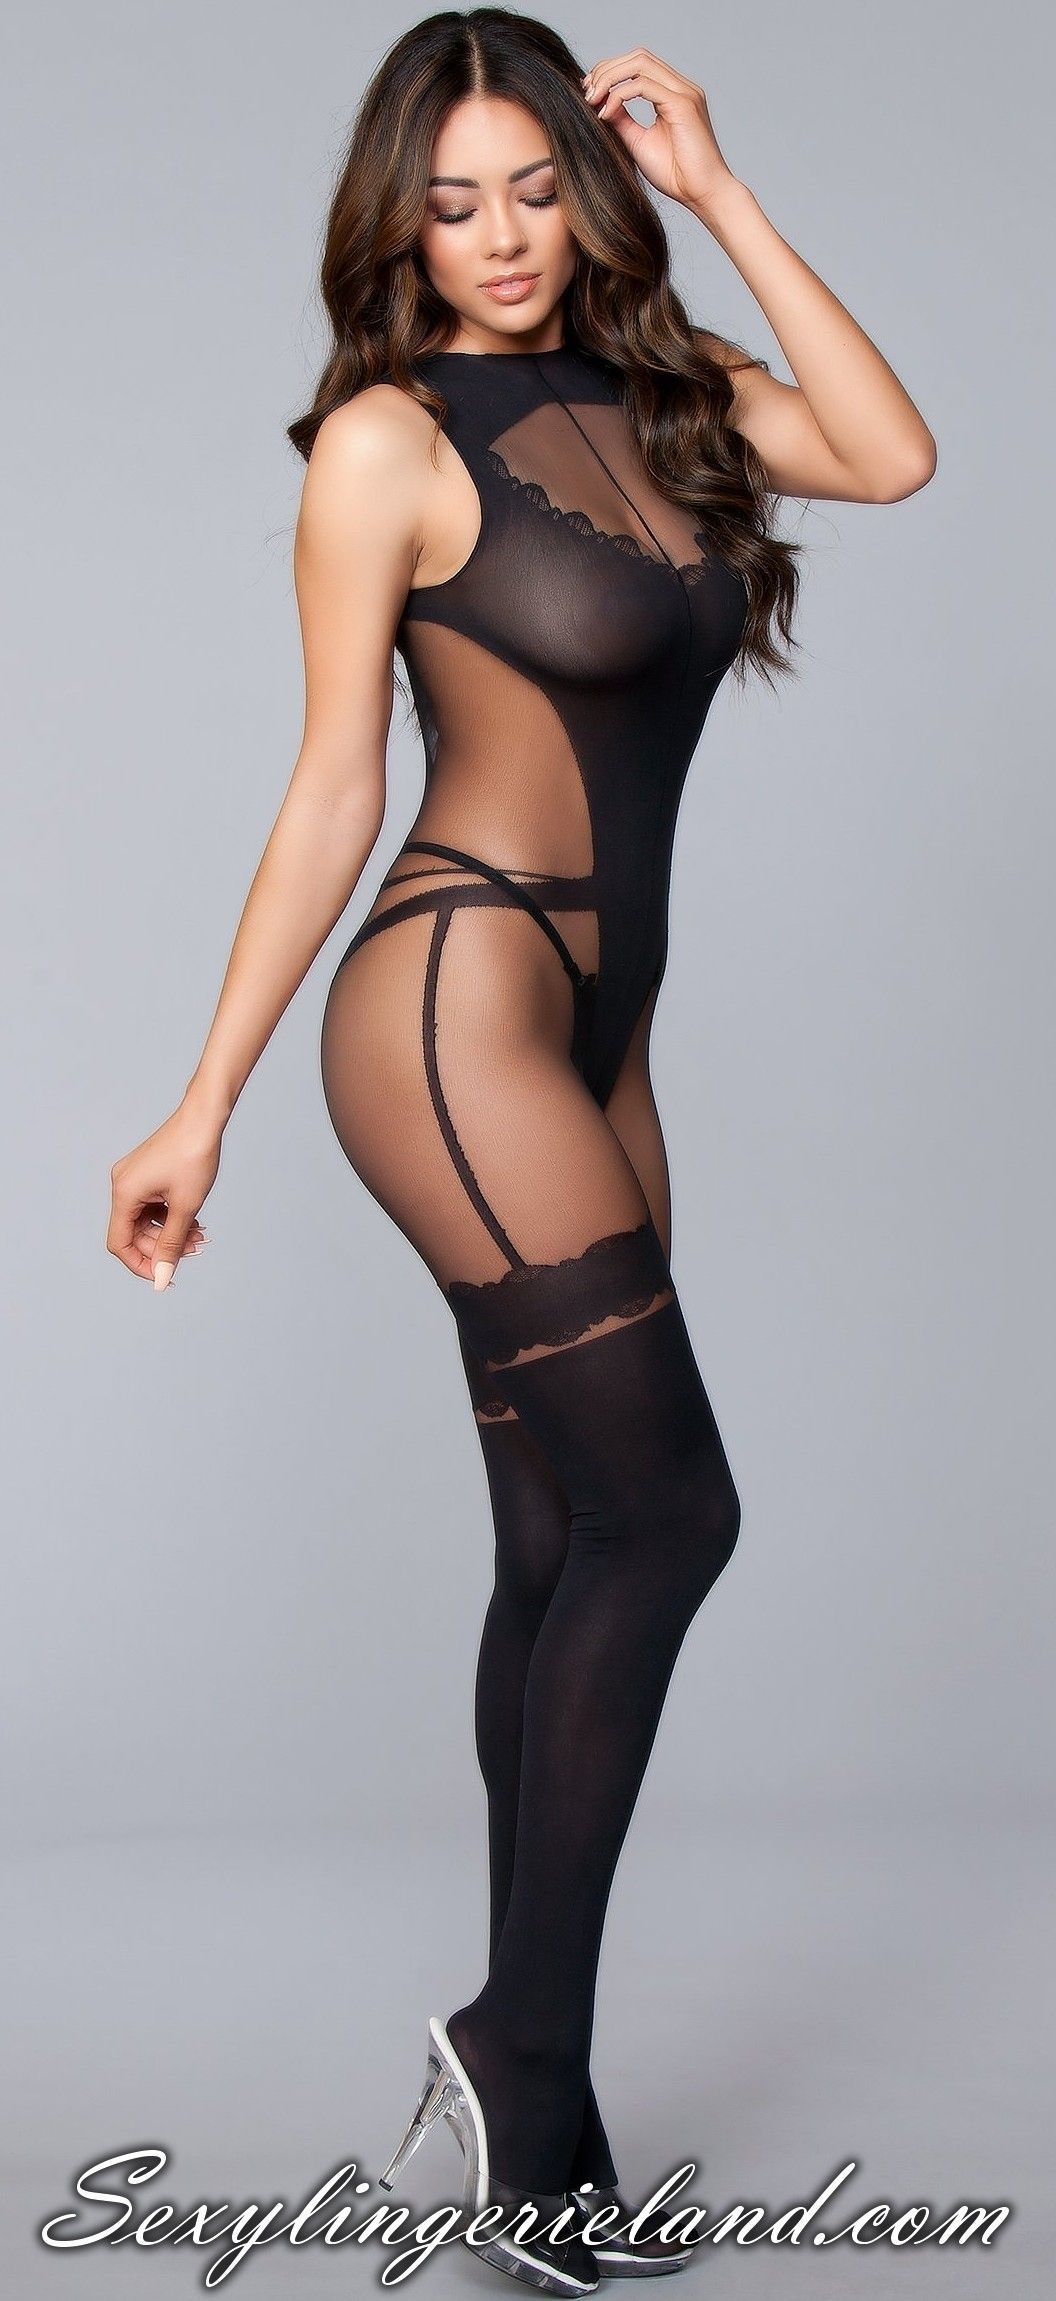 5528dca7c Very  sexy black  bodystocking with stylish design.  Girls bodystocking is  imitating bodysuit with thong back and faux tigh highs.